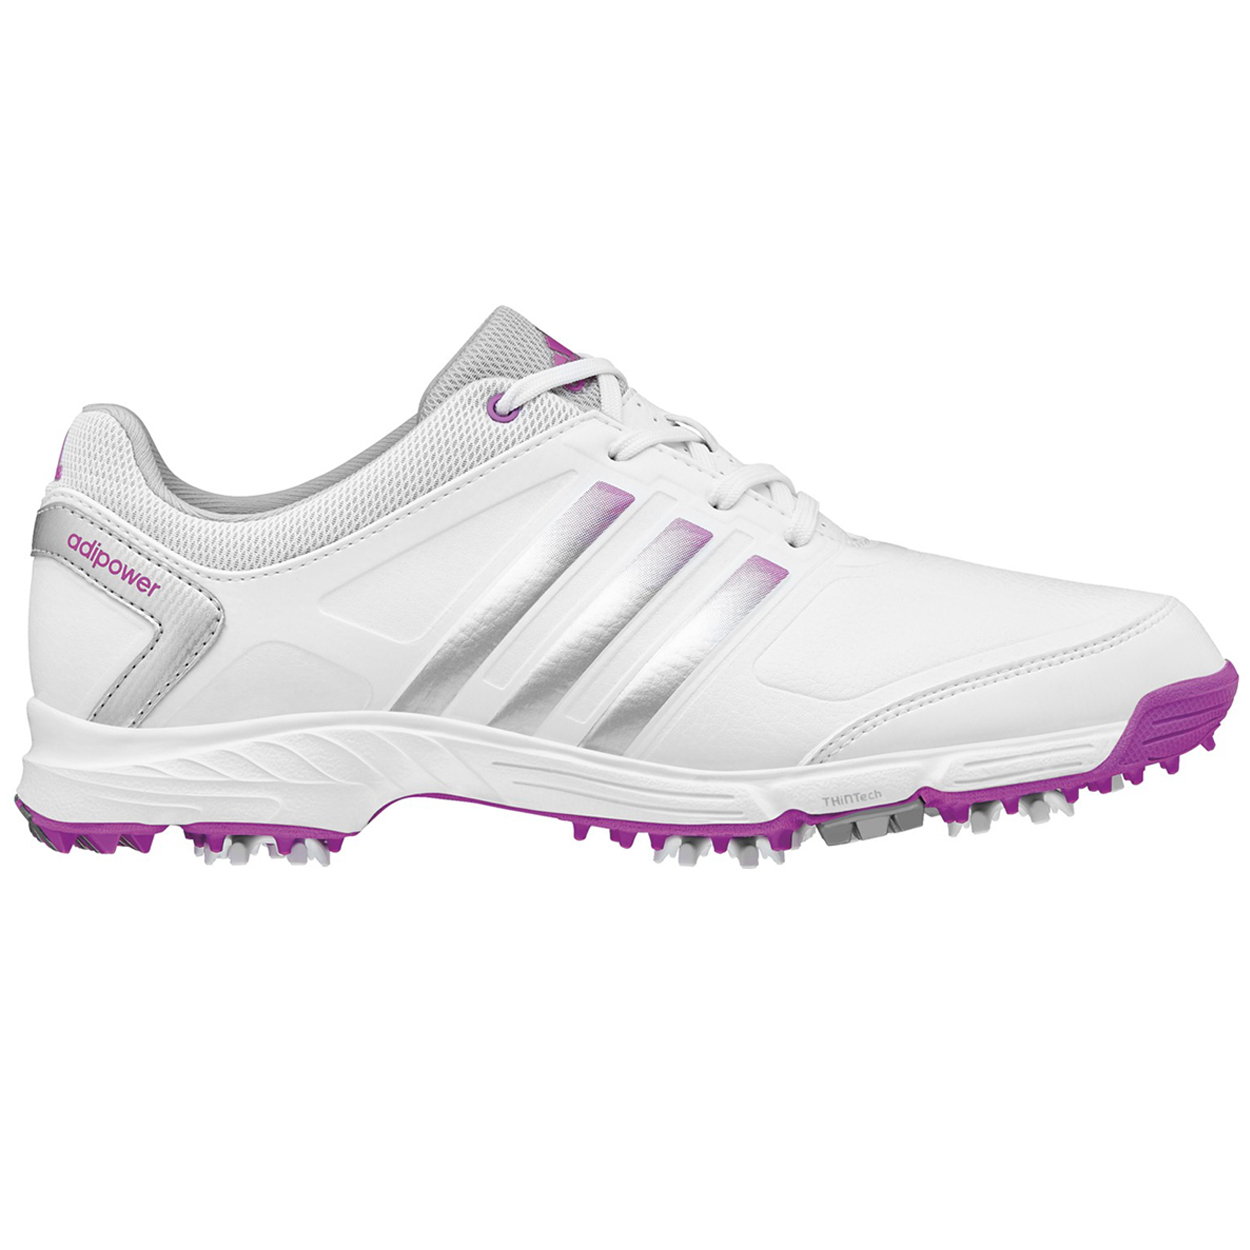 Adidas Women's adiPower...